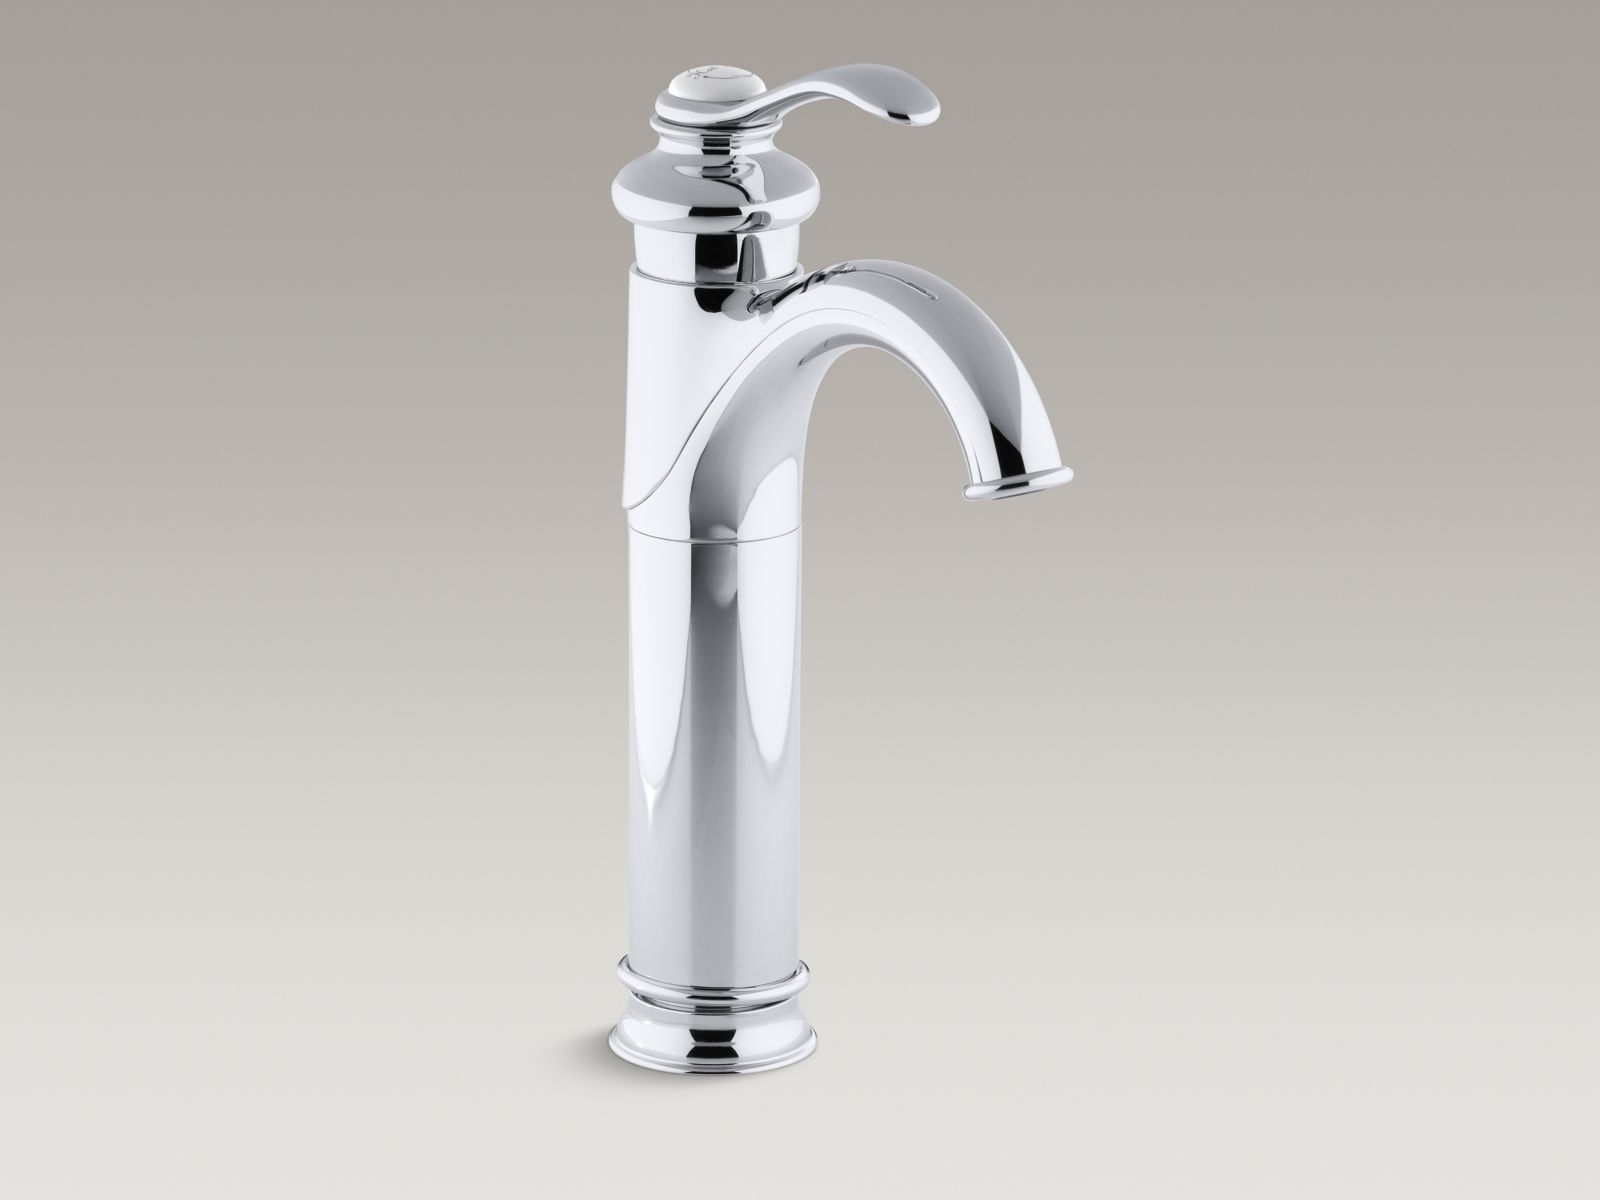 BuyPlumbing.net - Product: Kohler July™ K-P97282-4-CP single-handle ...